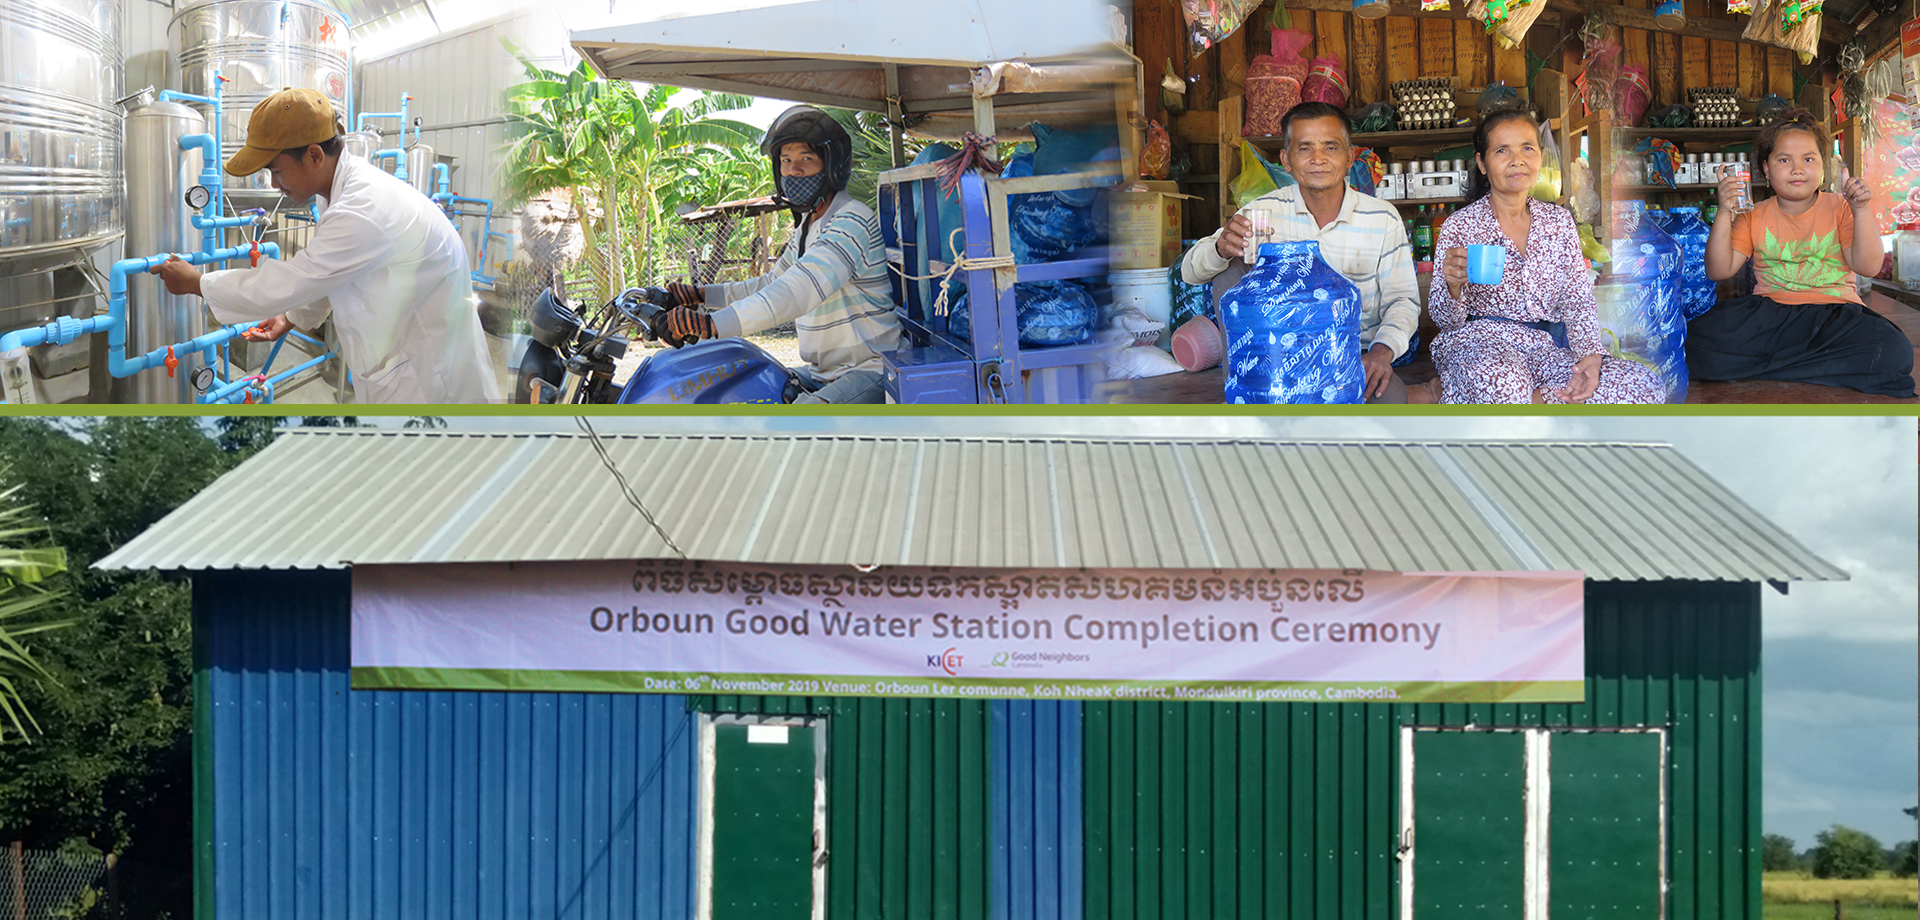 The Water Station Brings Hope To The Community